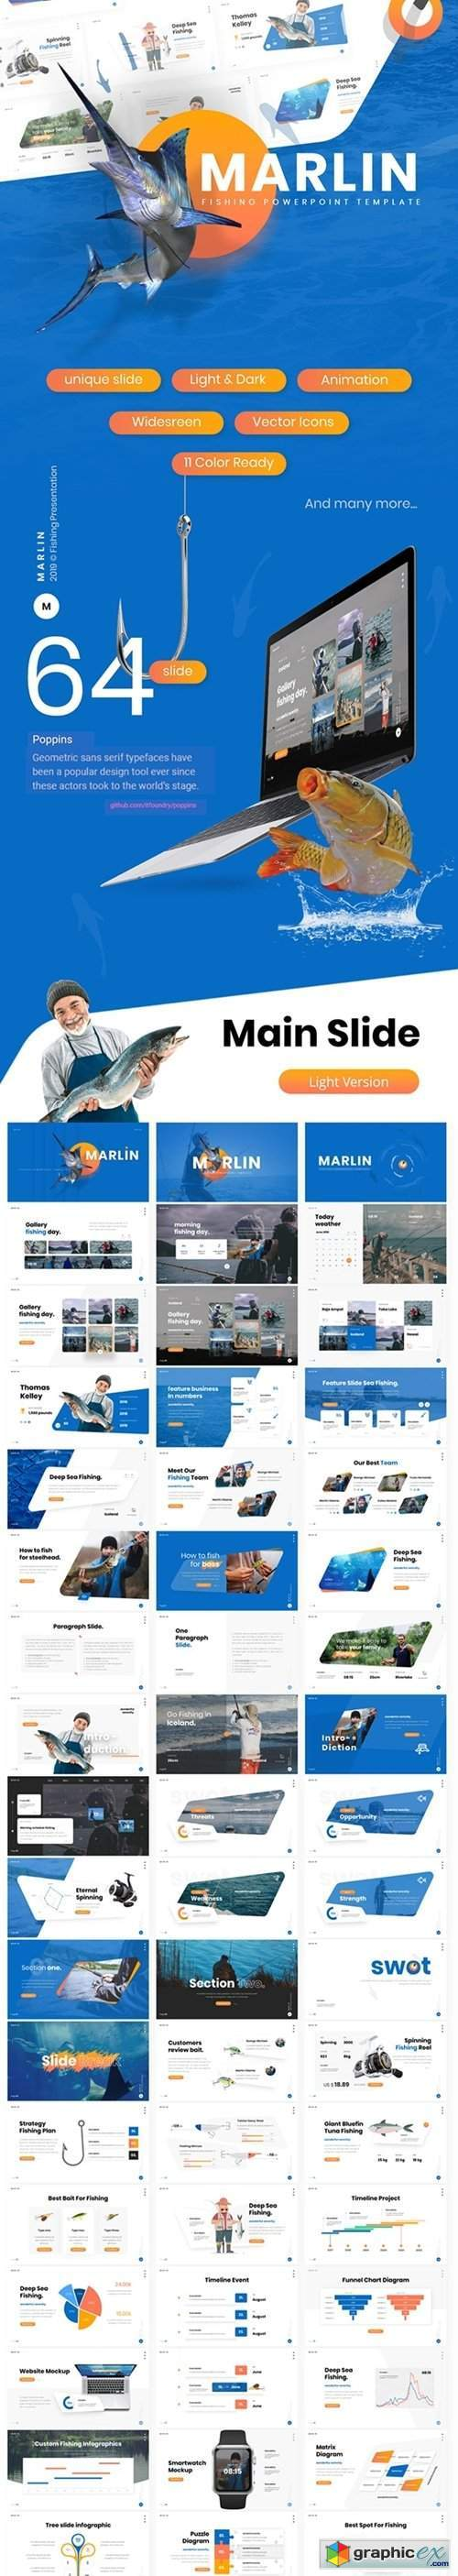 Marlin Fishing Presentation PowerPoint Template